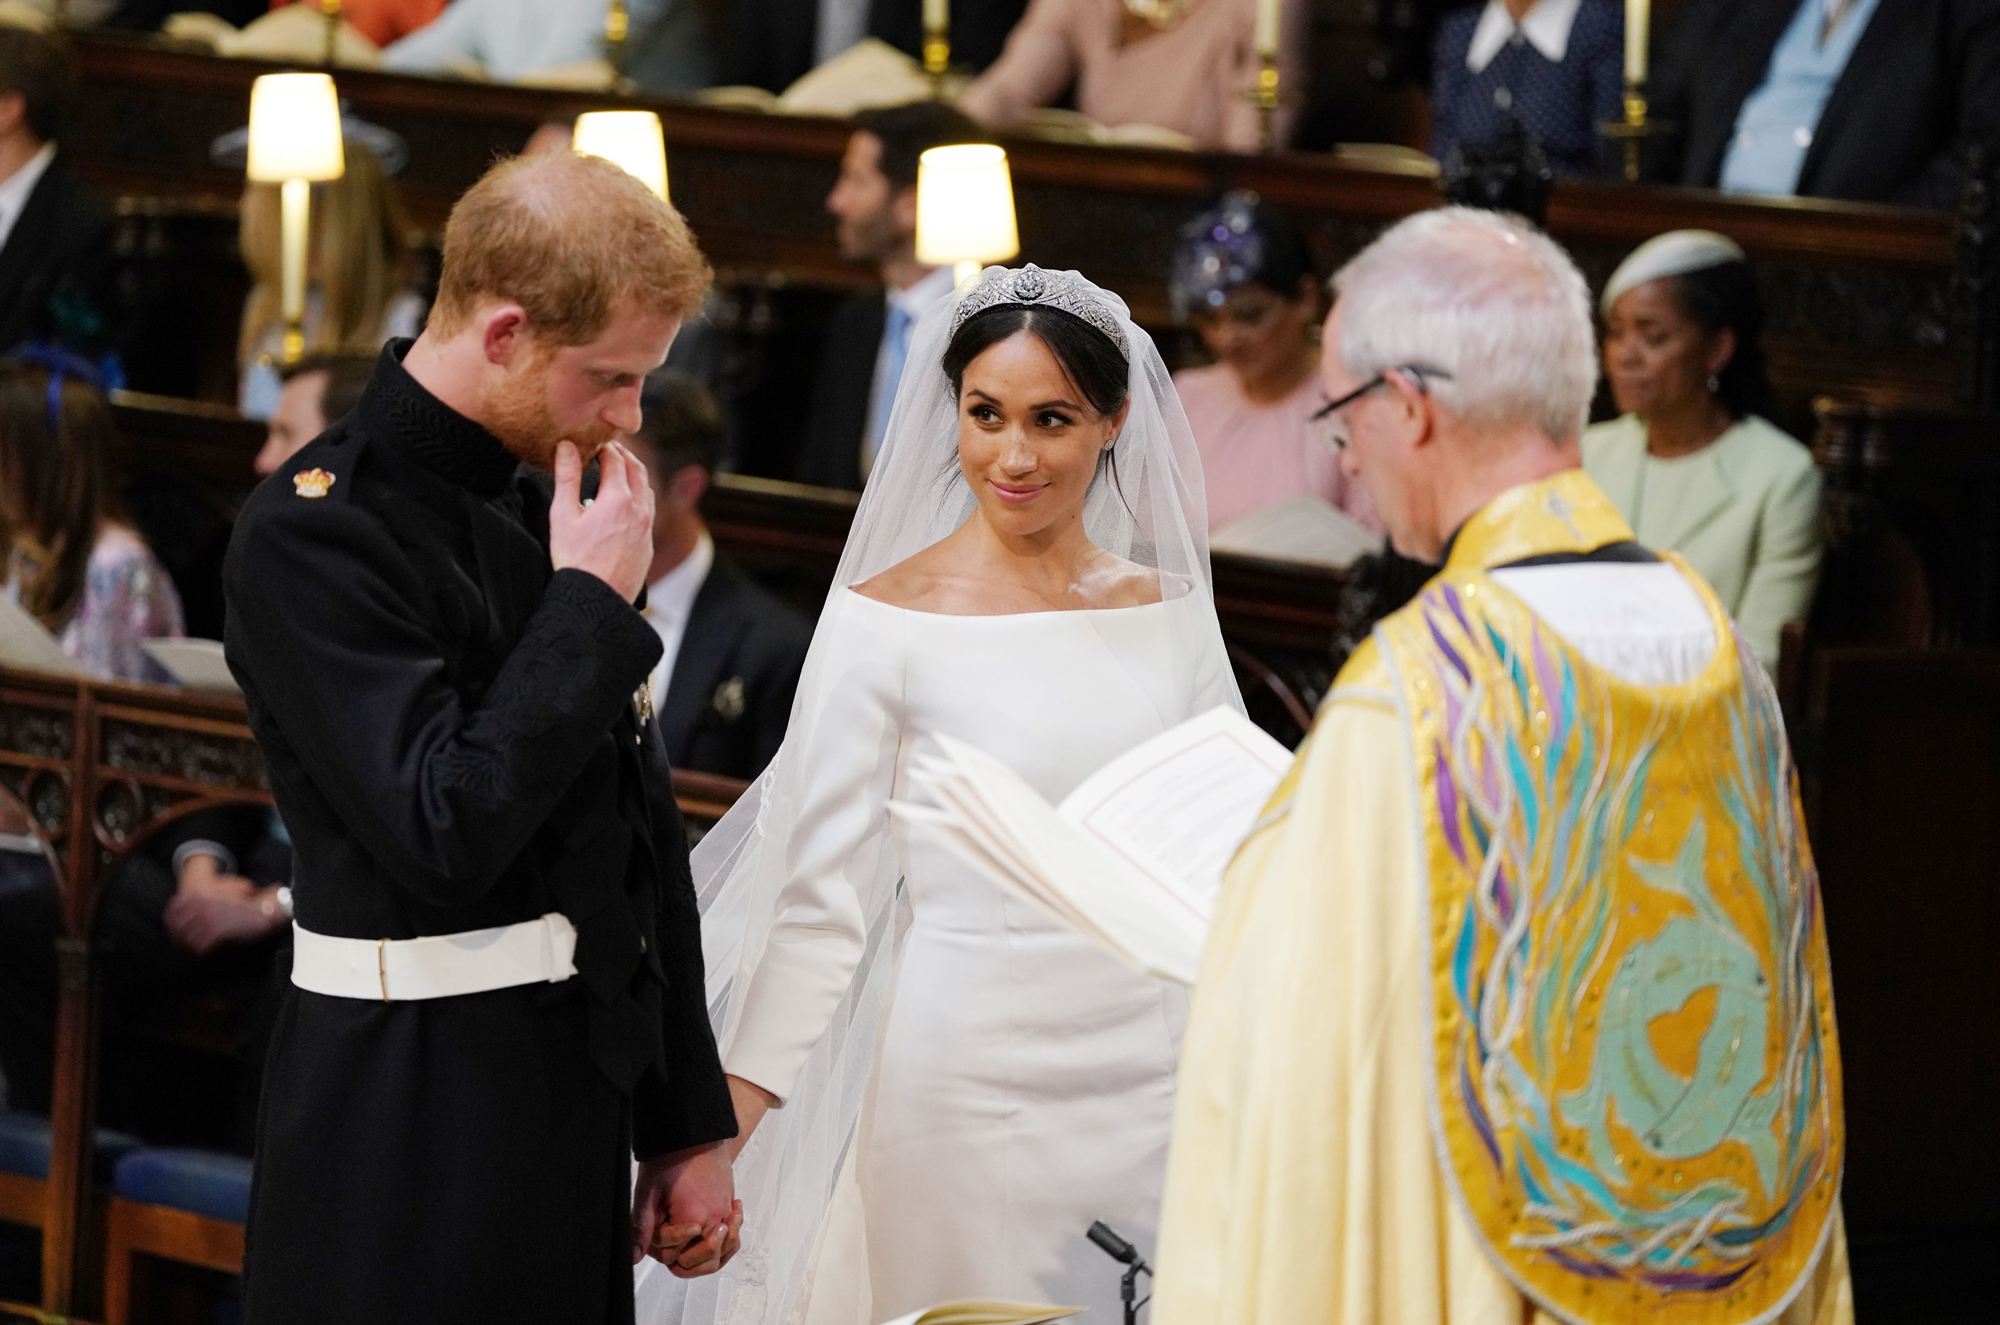 Royal Wedding Dresses Meghan Markle Lead